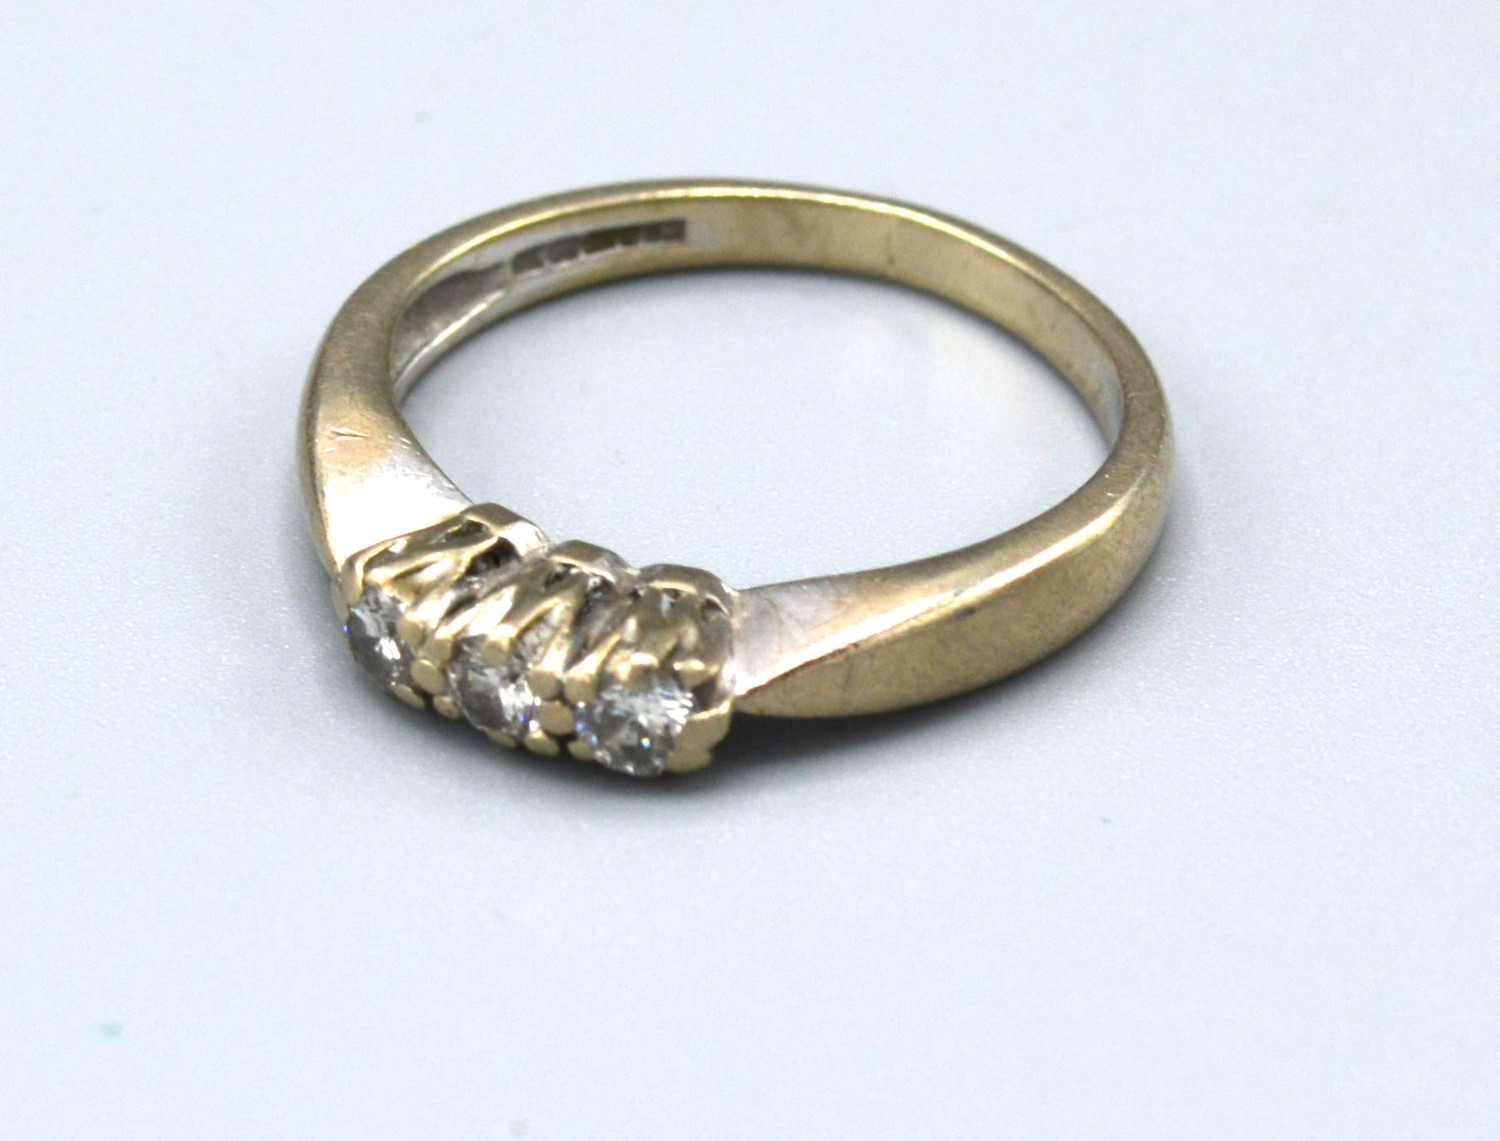 An 18ct White Gold Three Stone Diamond Ring with pierced setting, 3.2 gms Size L